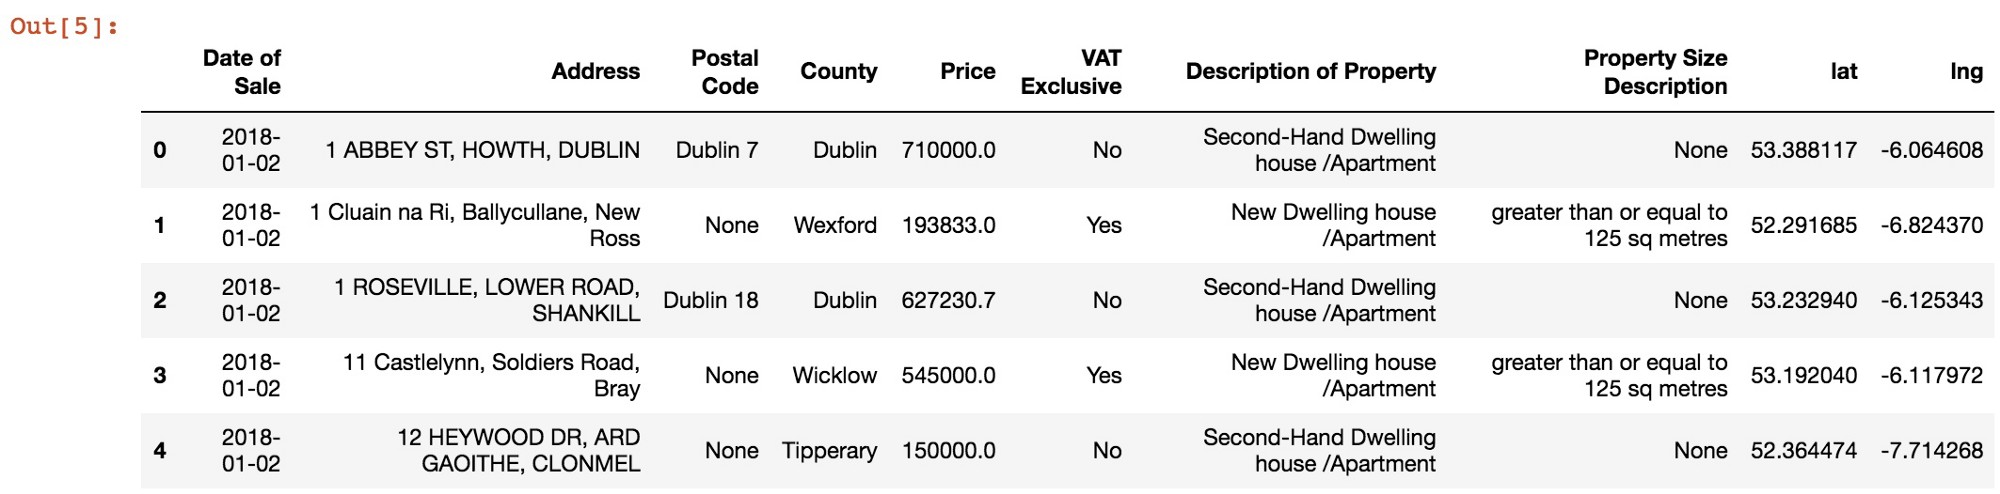 An Analysis of Property Prices in Ireland - Towards Data Science